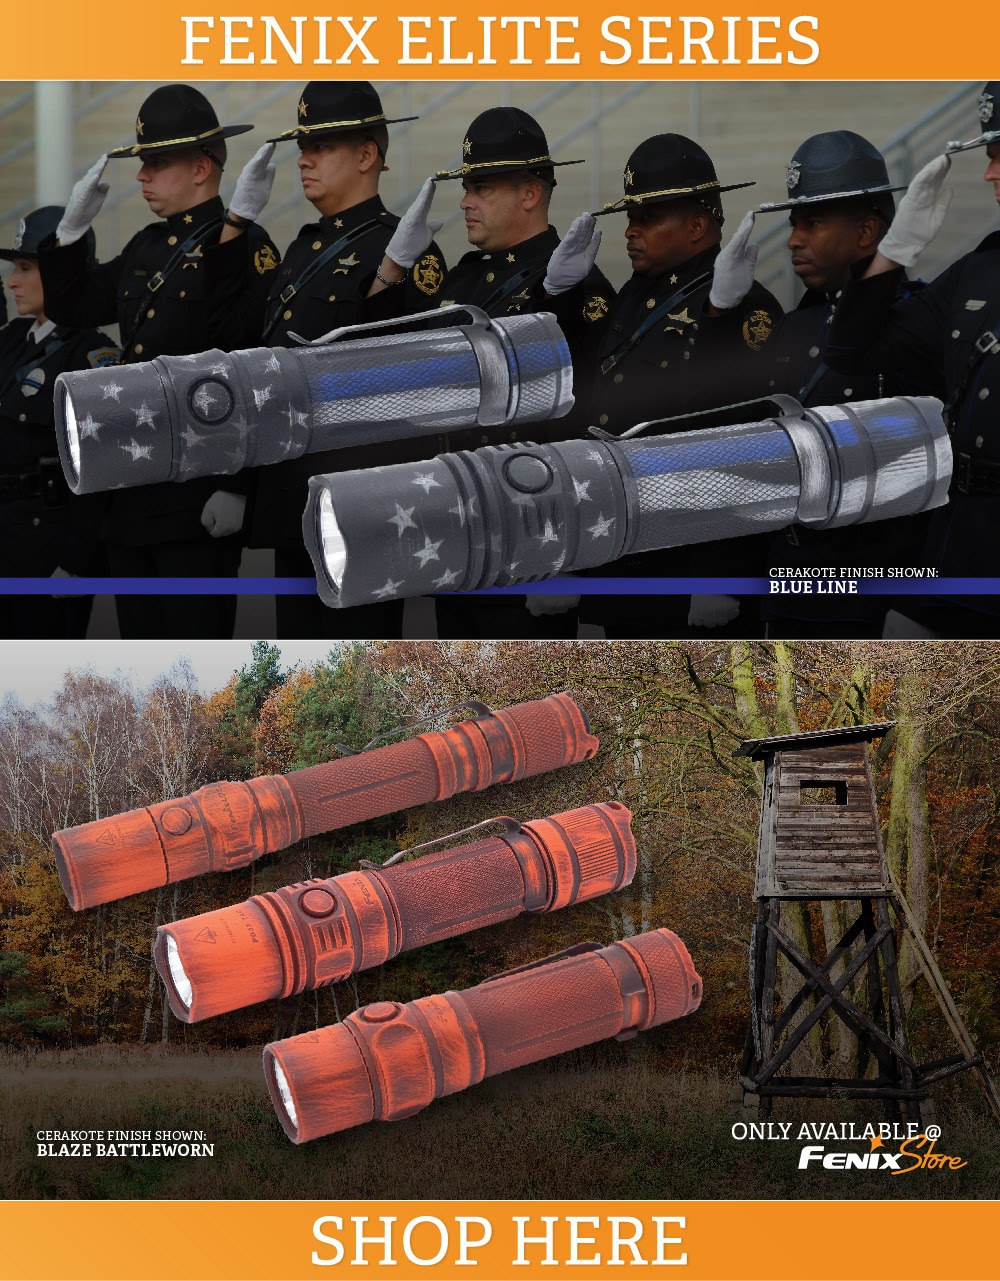 Fenix Flashlights - Cerakoted Blue Line and Orange Blaze